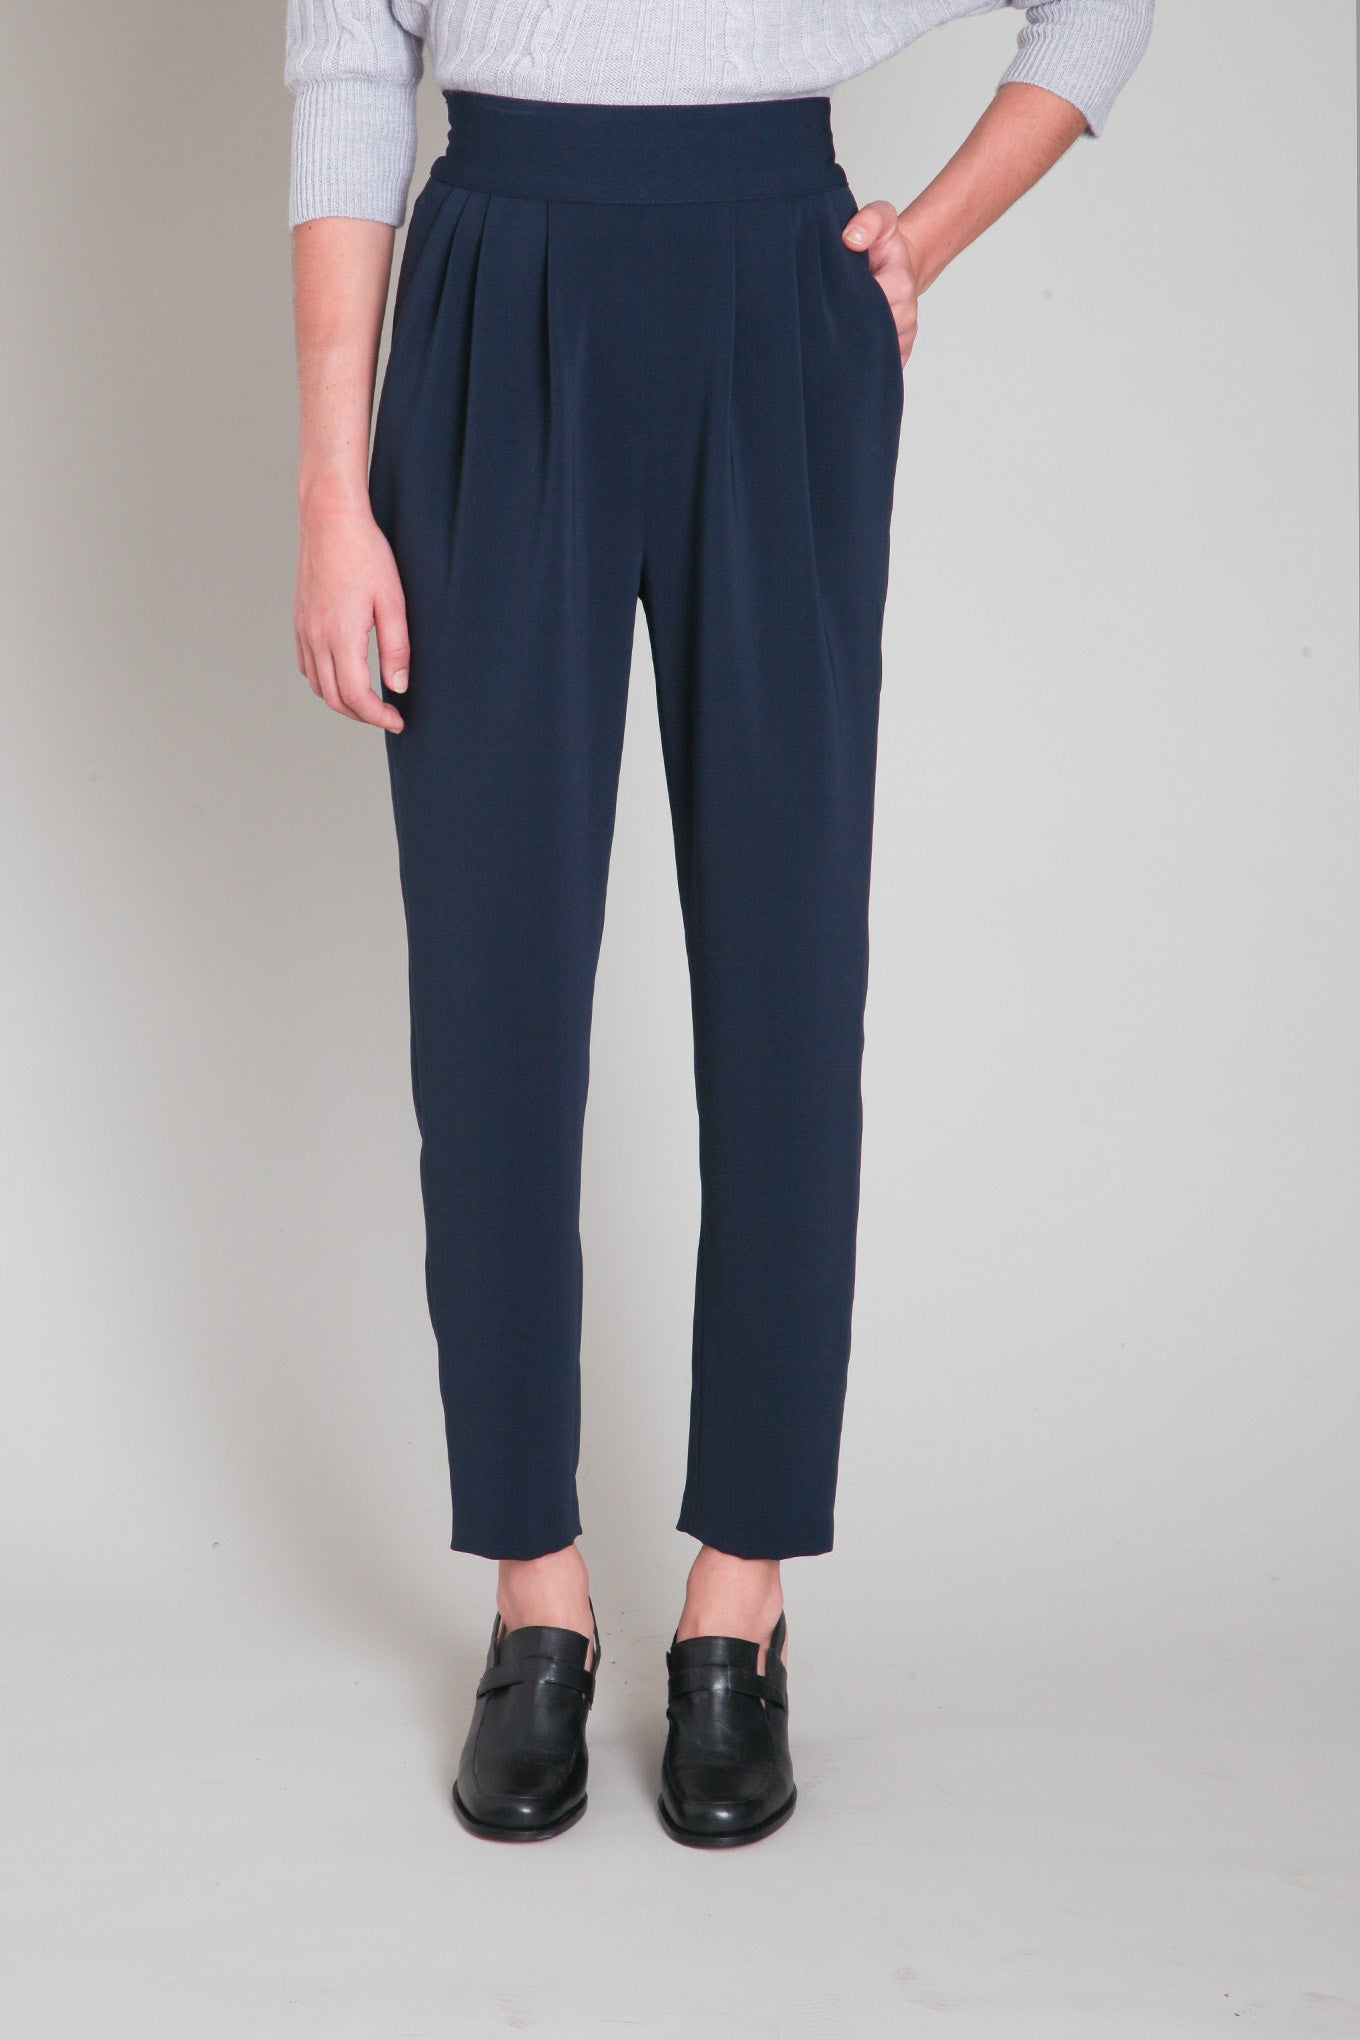 A.Cheng / Day Pants